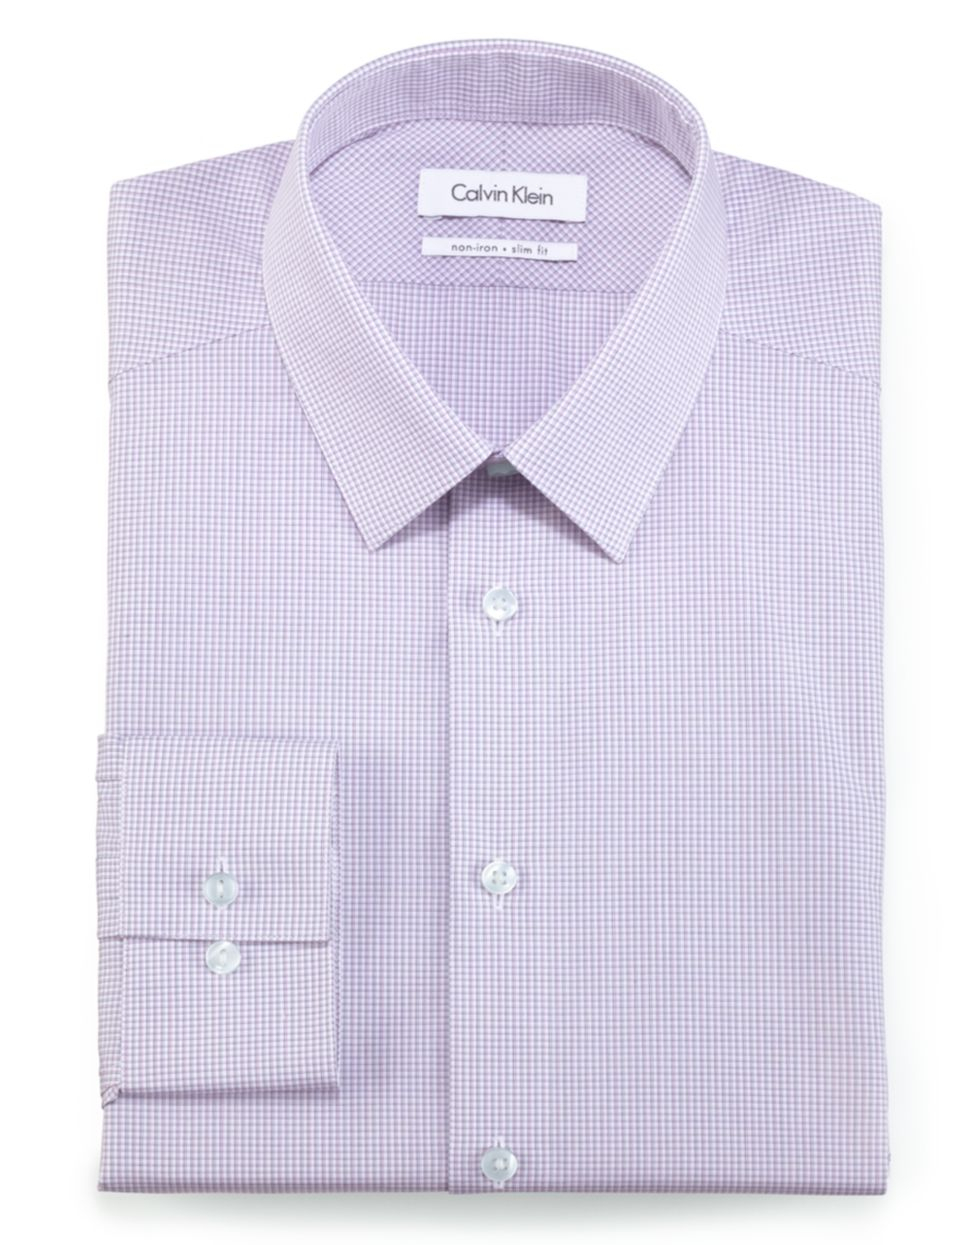 calvin klein slim fit non iron dress shirt in purple for